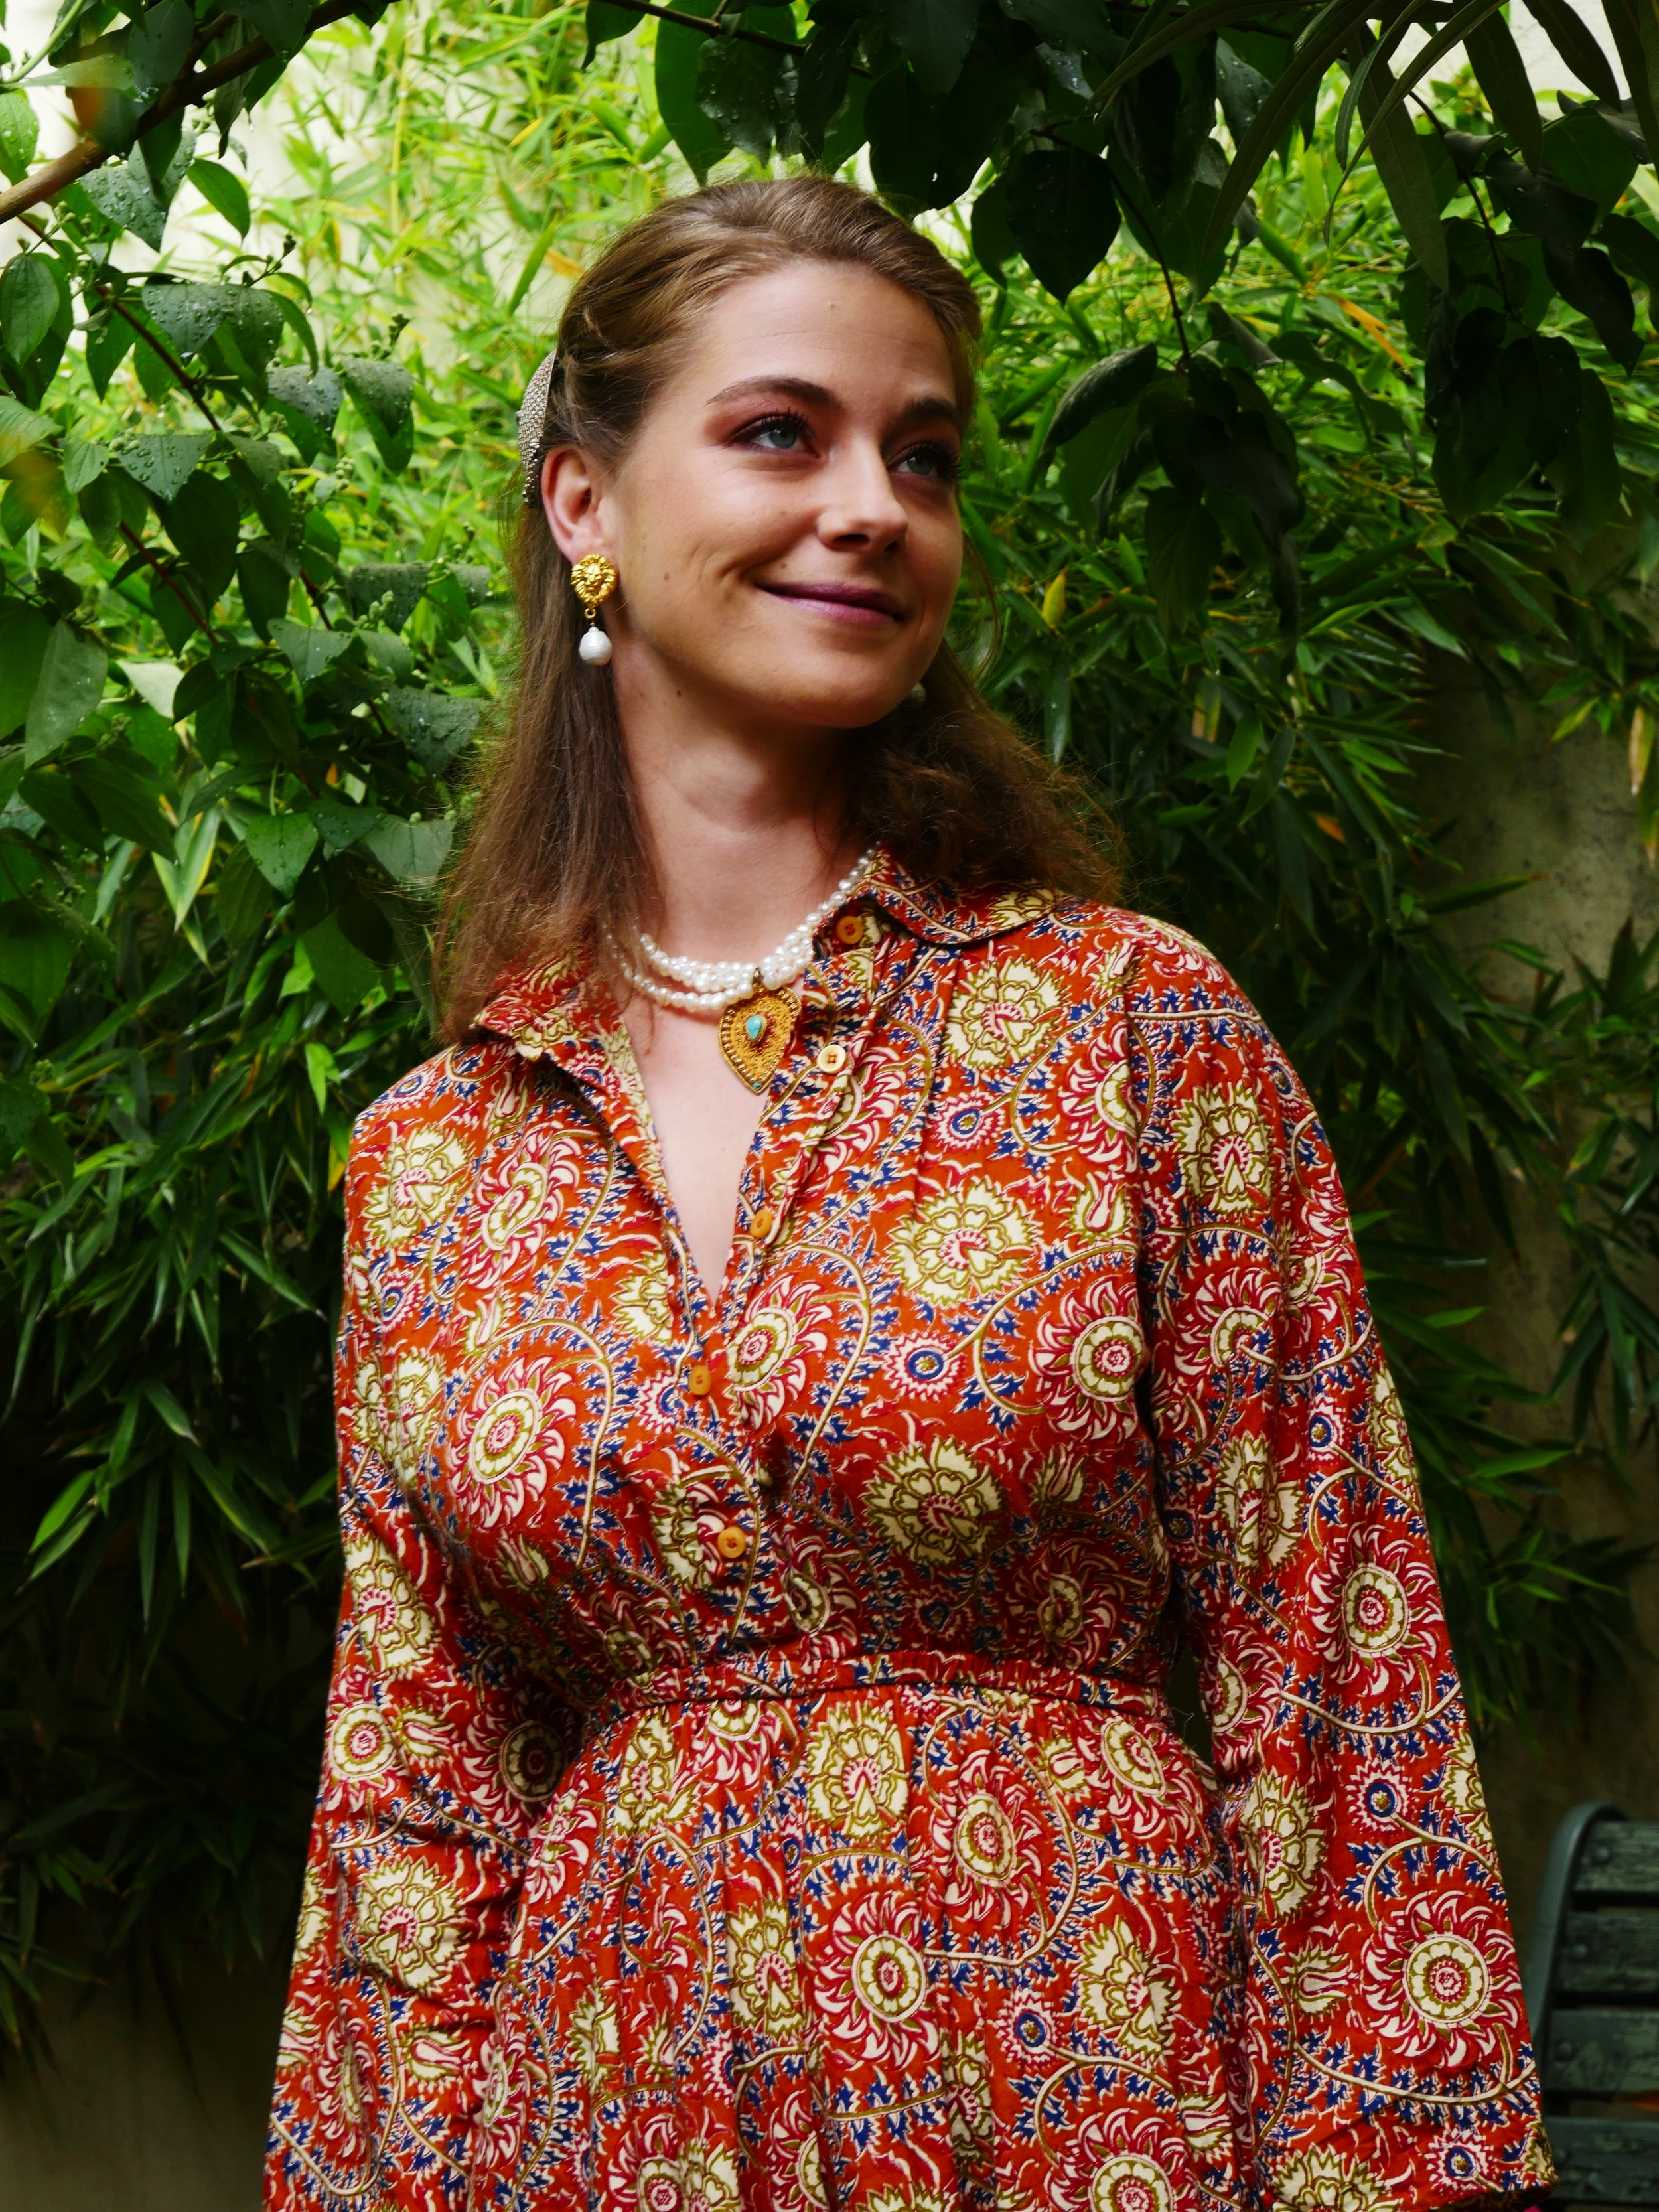 Ana Orange Long Dress - 100% Indian cotton, made in Bangladesh with love